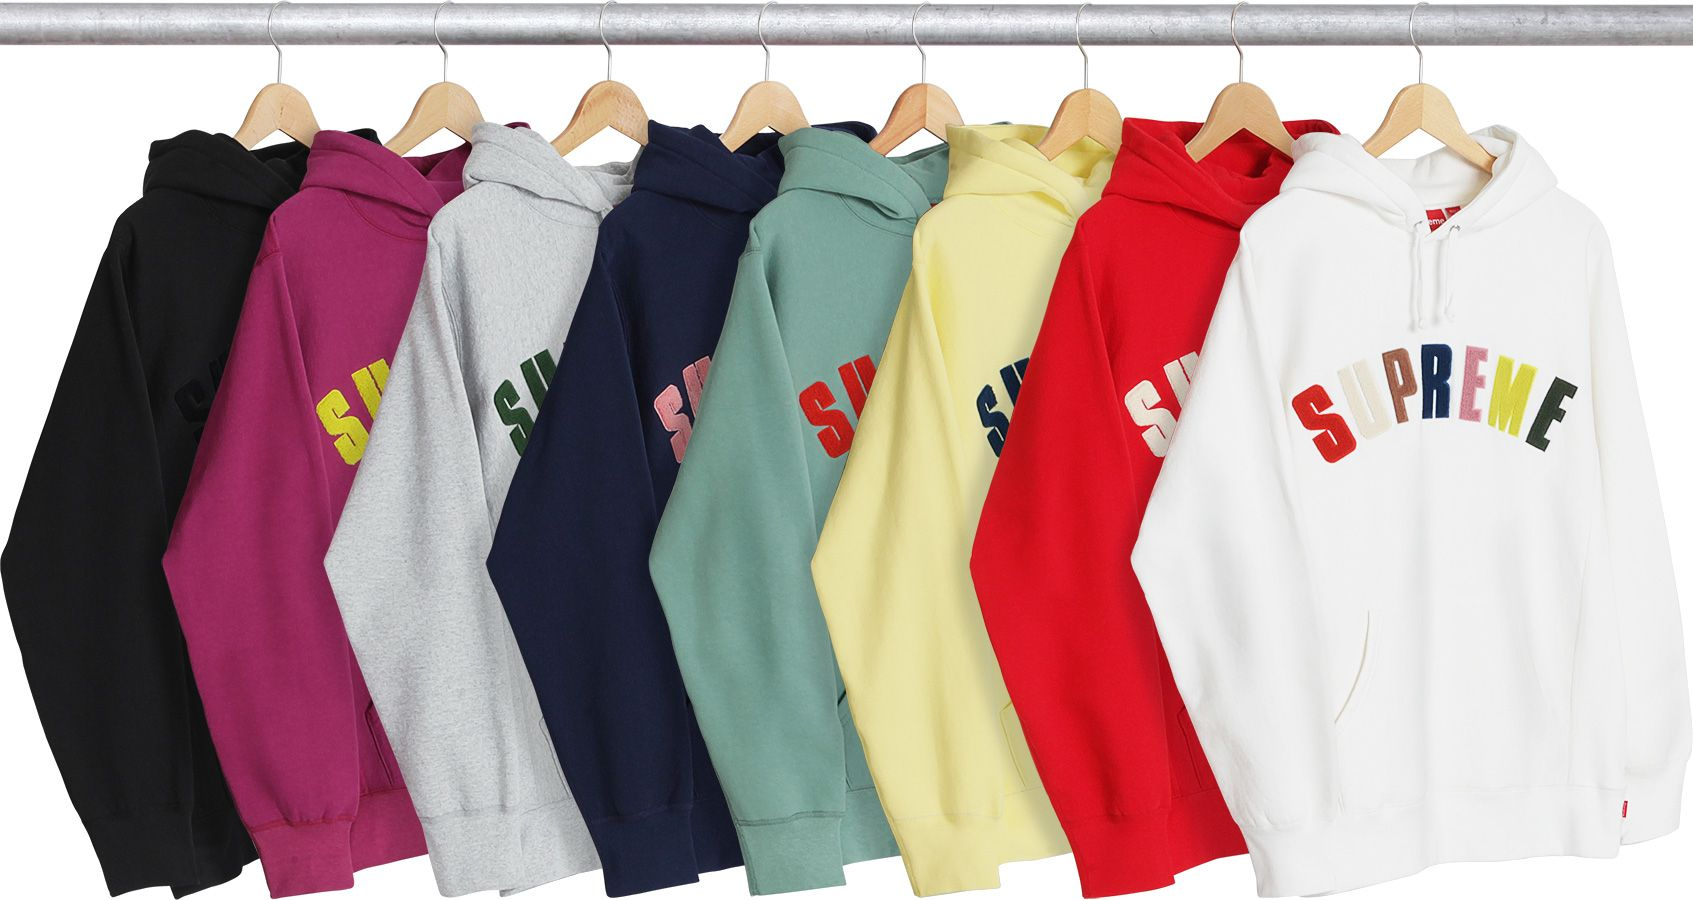 1gh3zvyv Xg Supreme Clothing Hooded Sweatshirts Swag Outfits [ 900 x 1693 Pixel ]